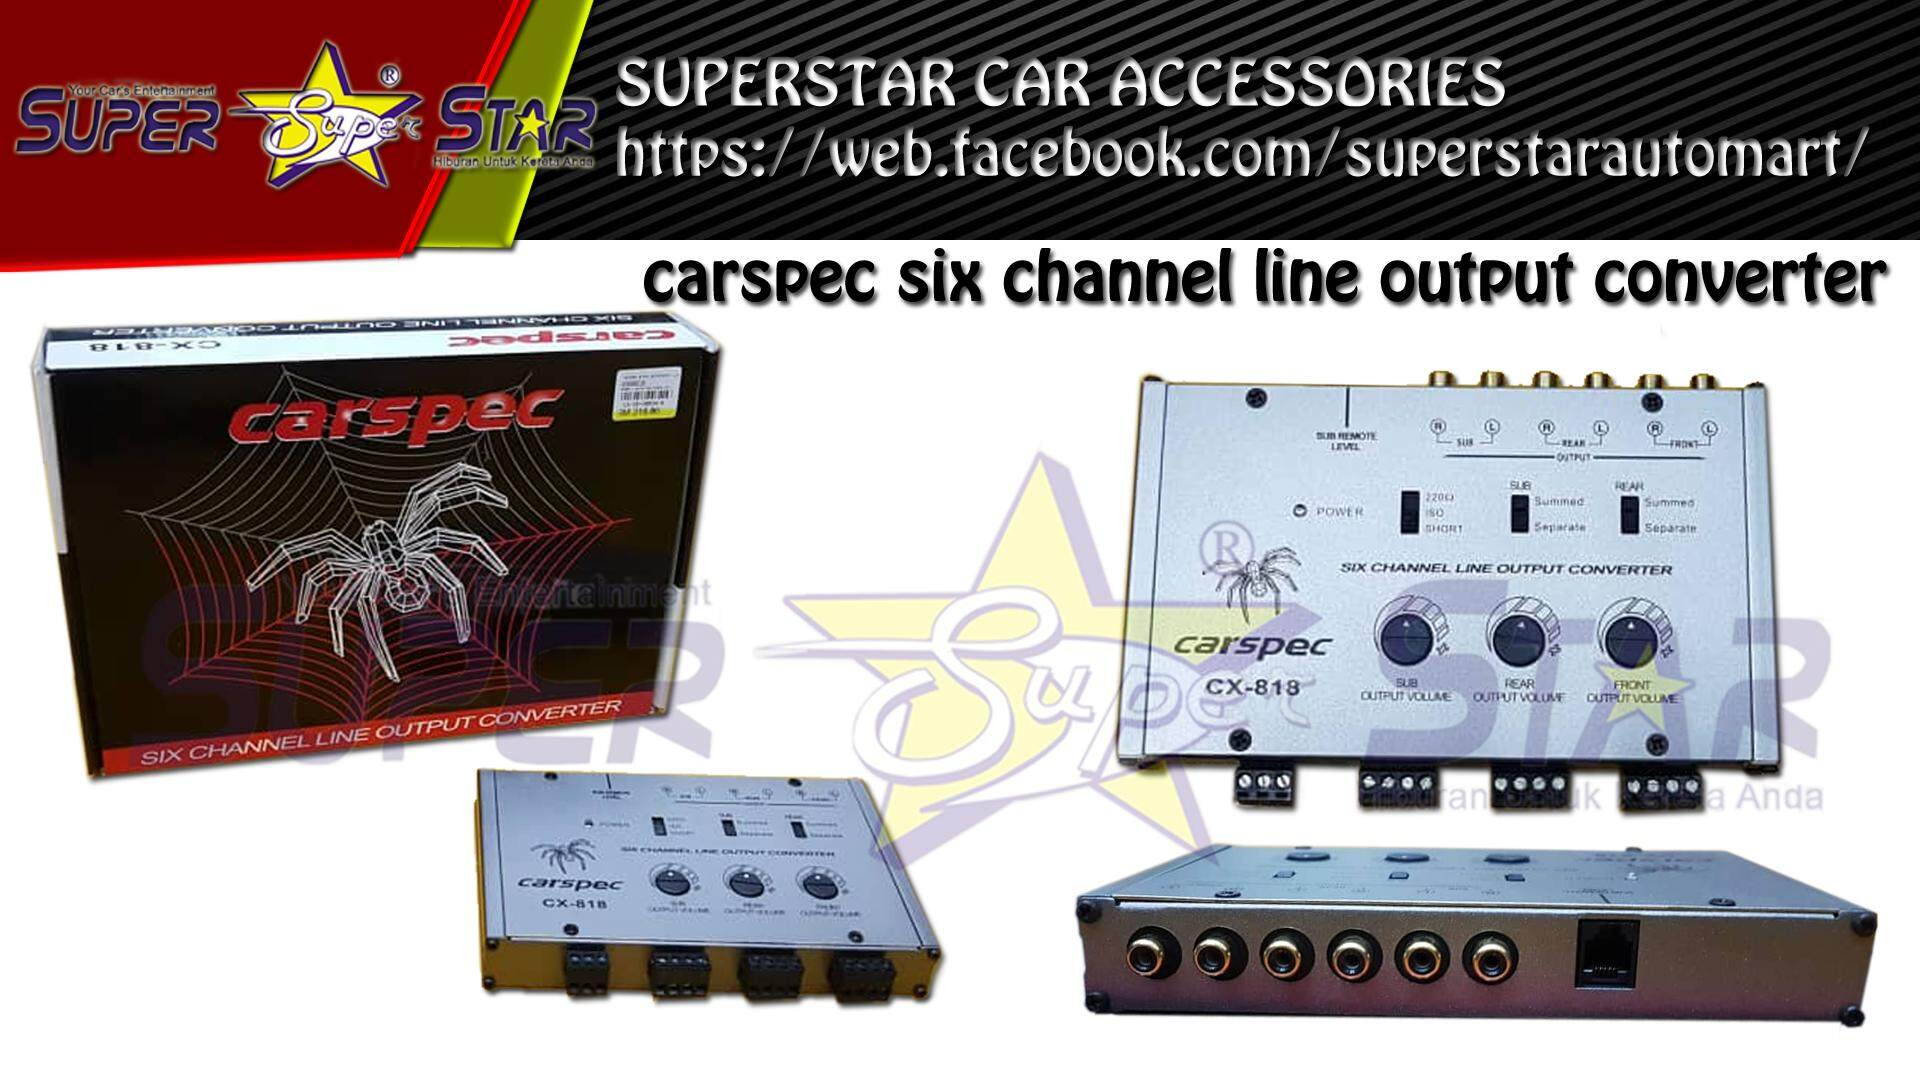 Carspec six channel line output converter